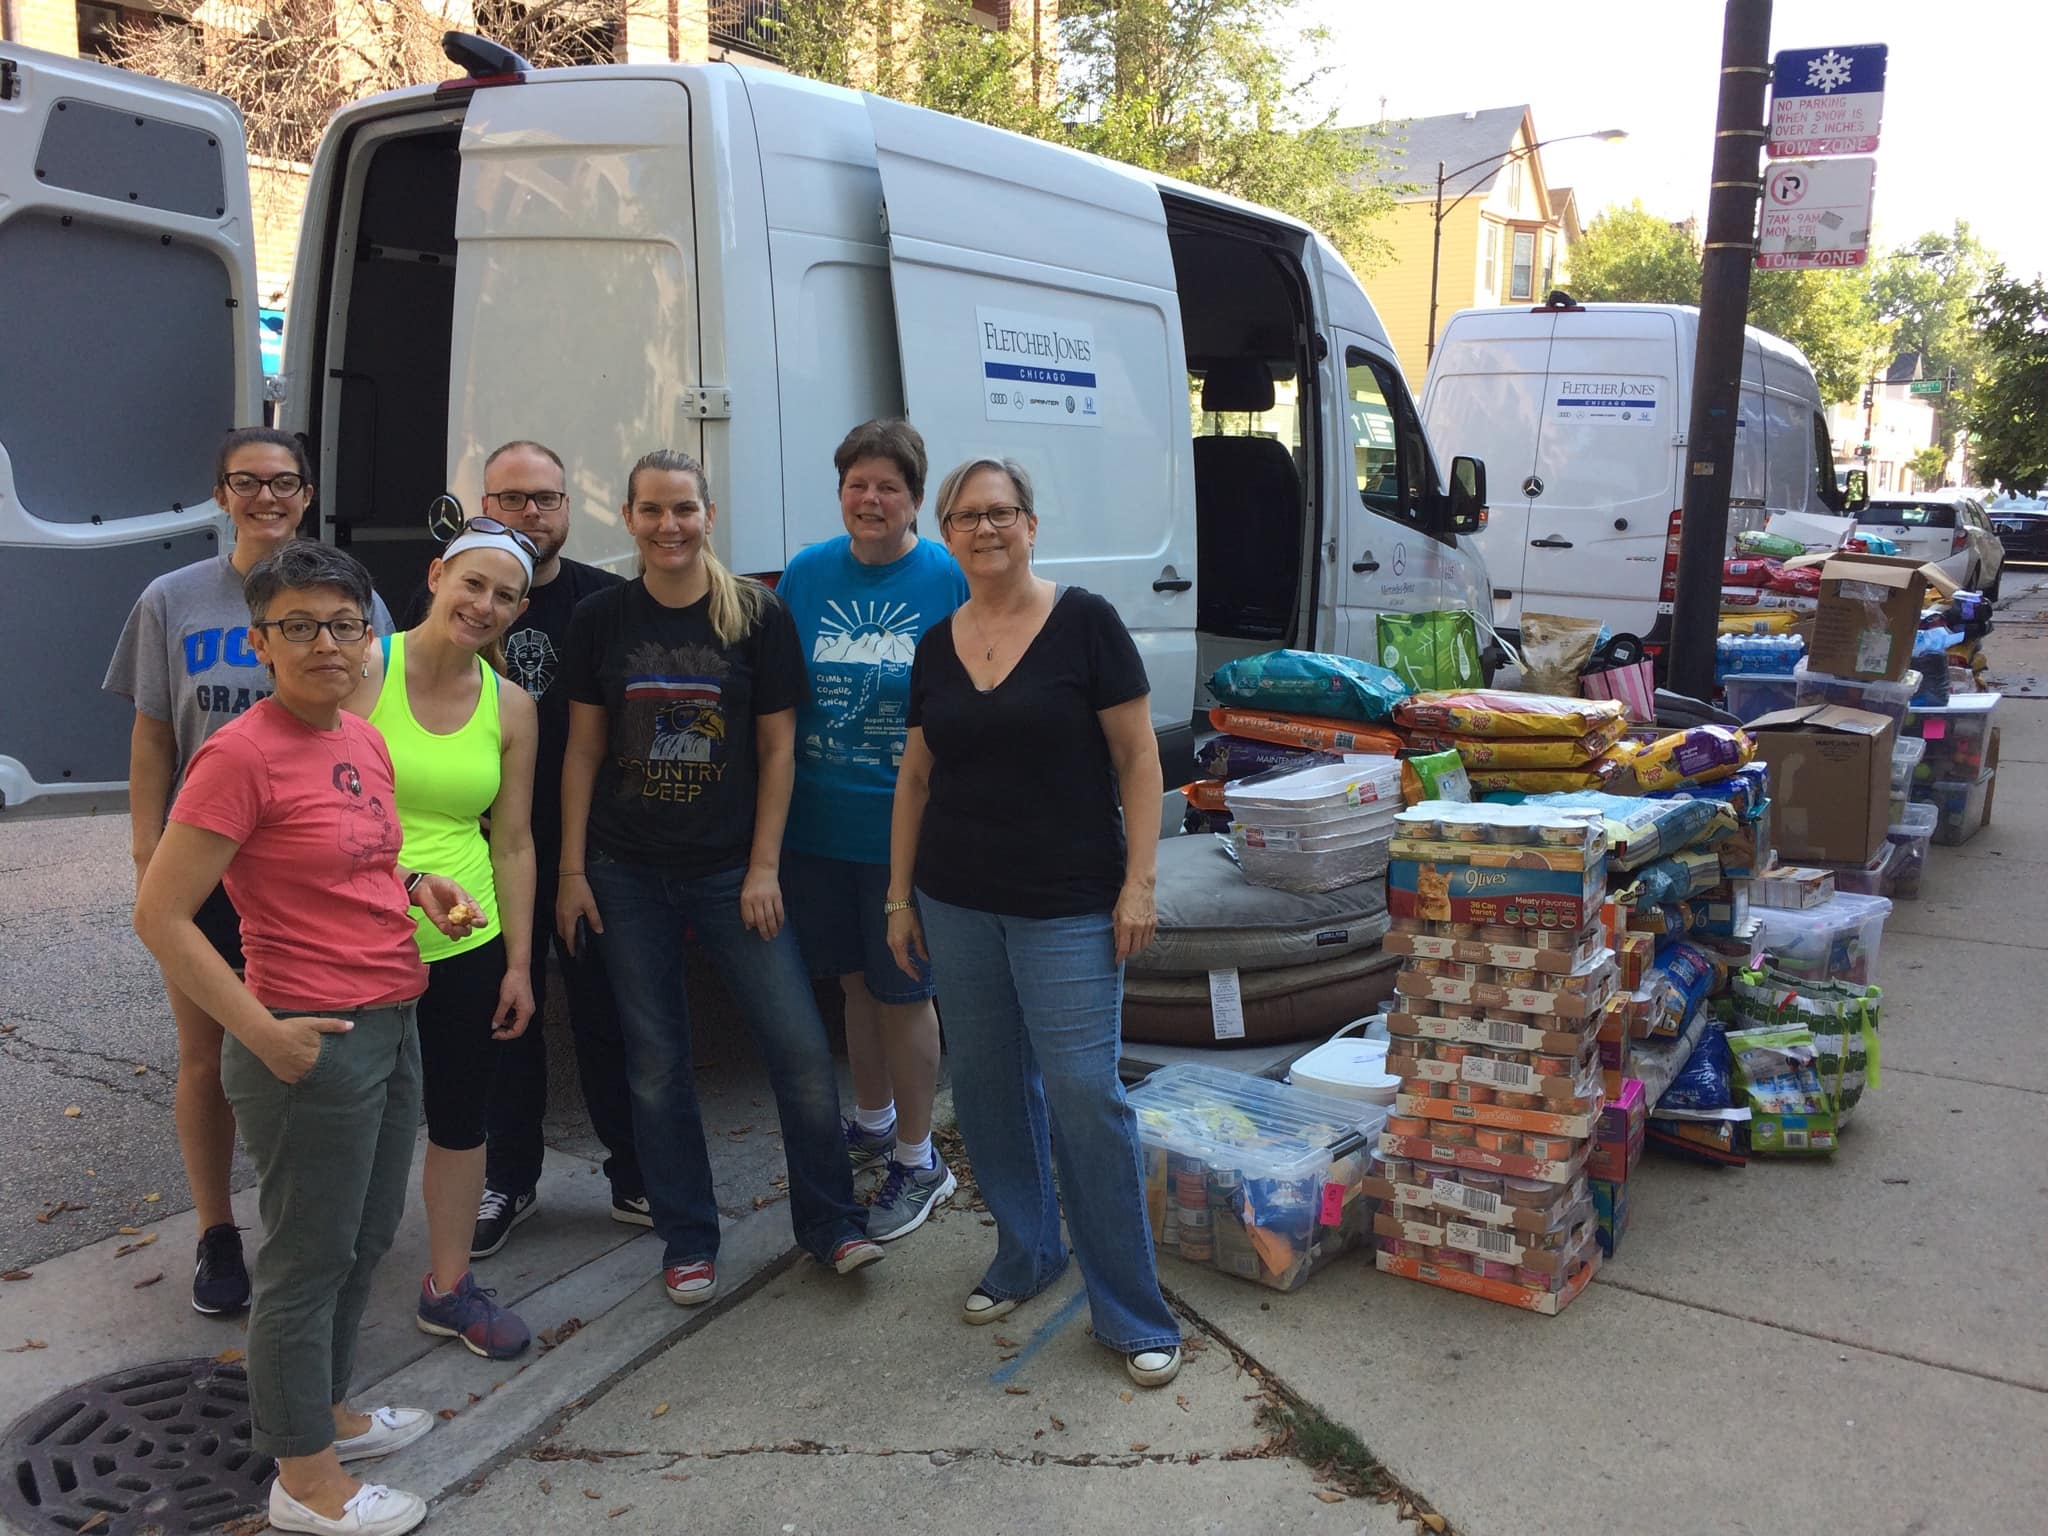 Volunteers that helped load the Sprinter Vans